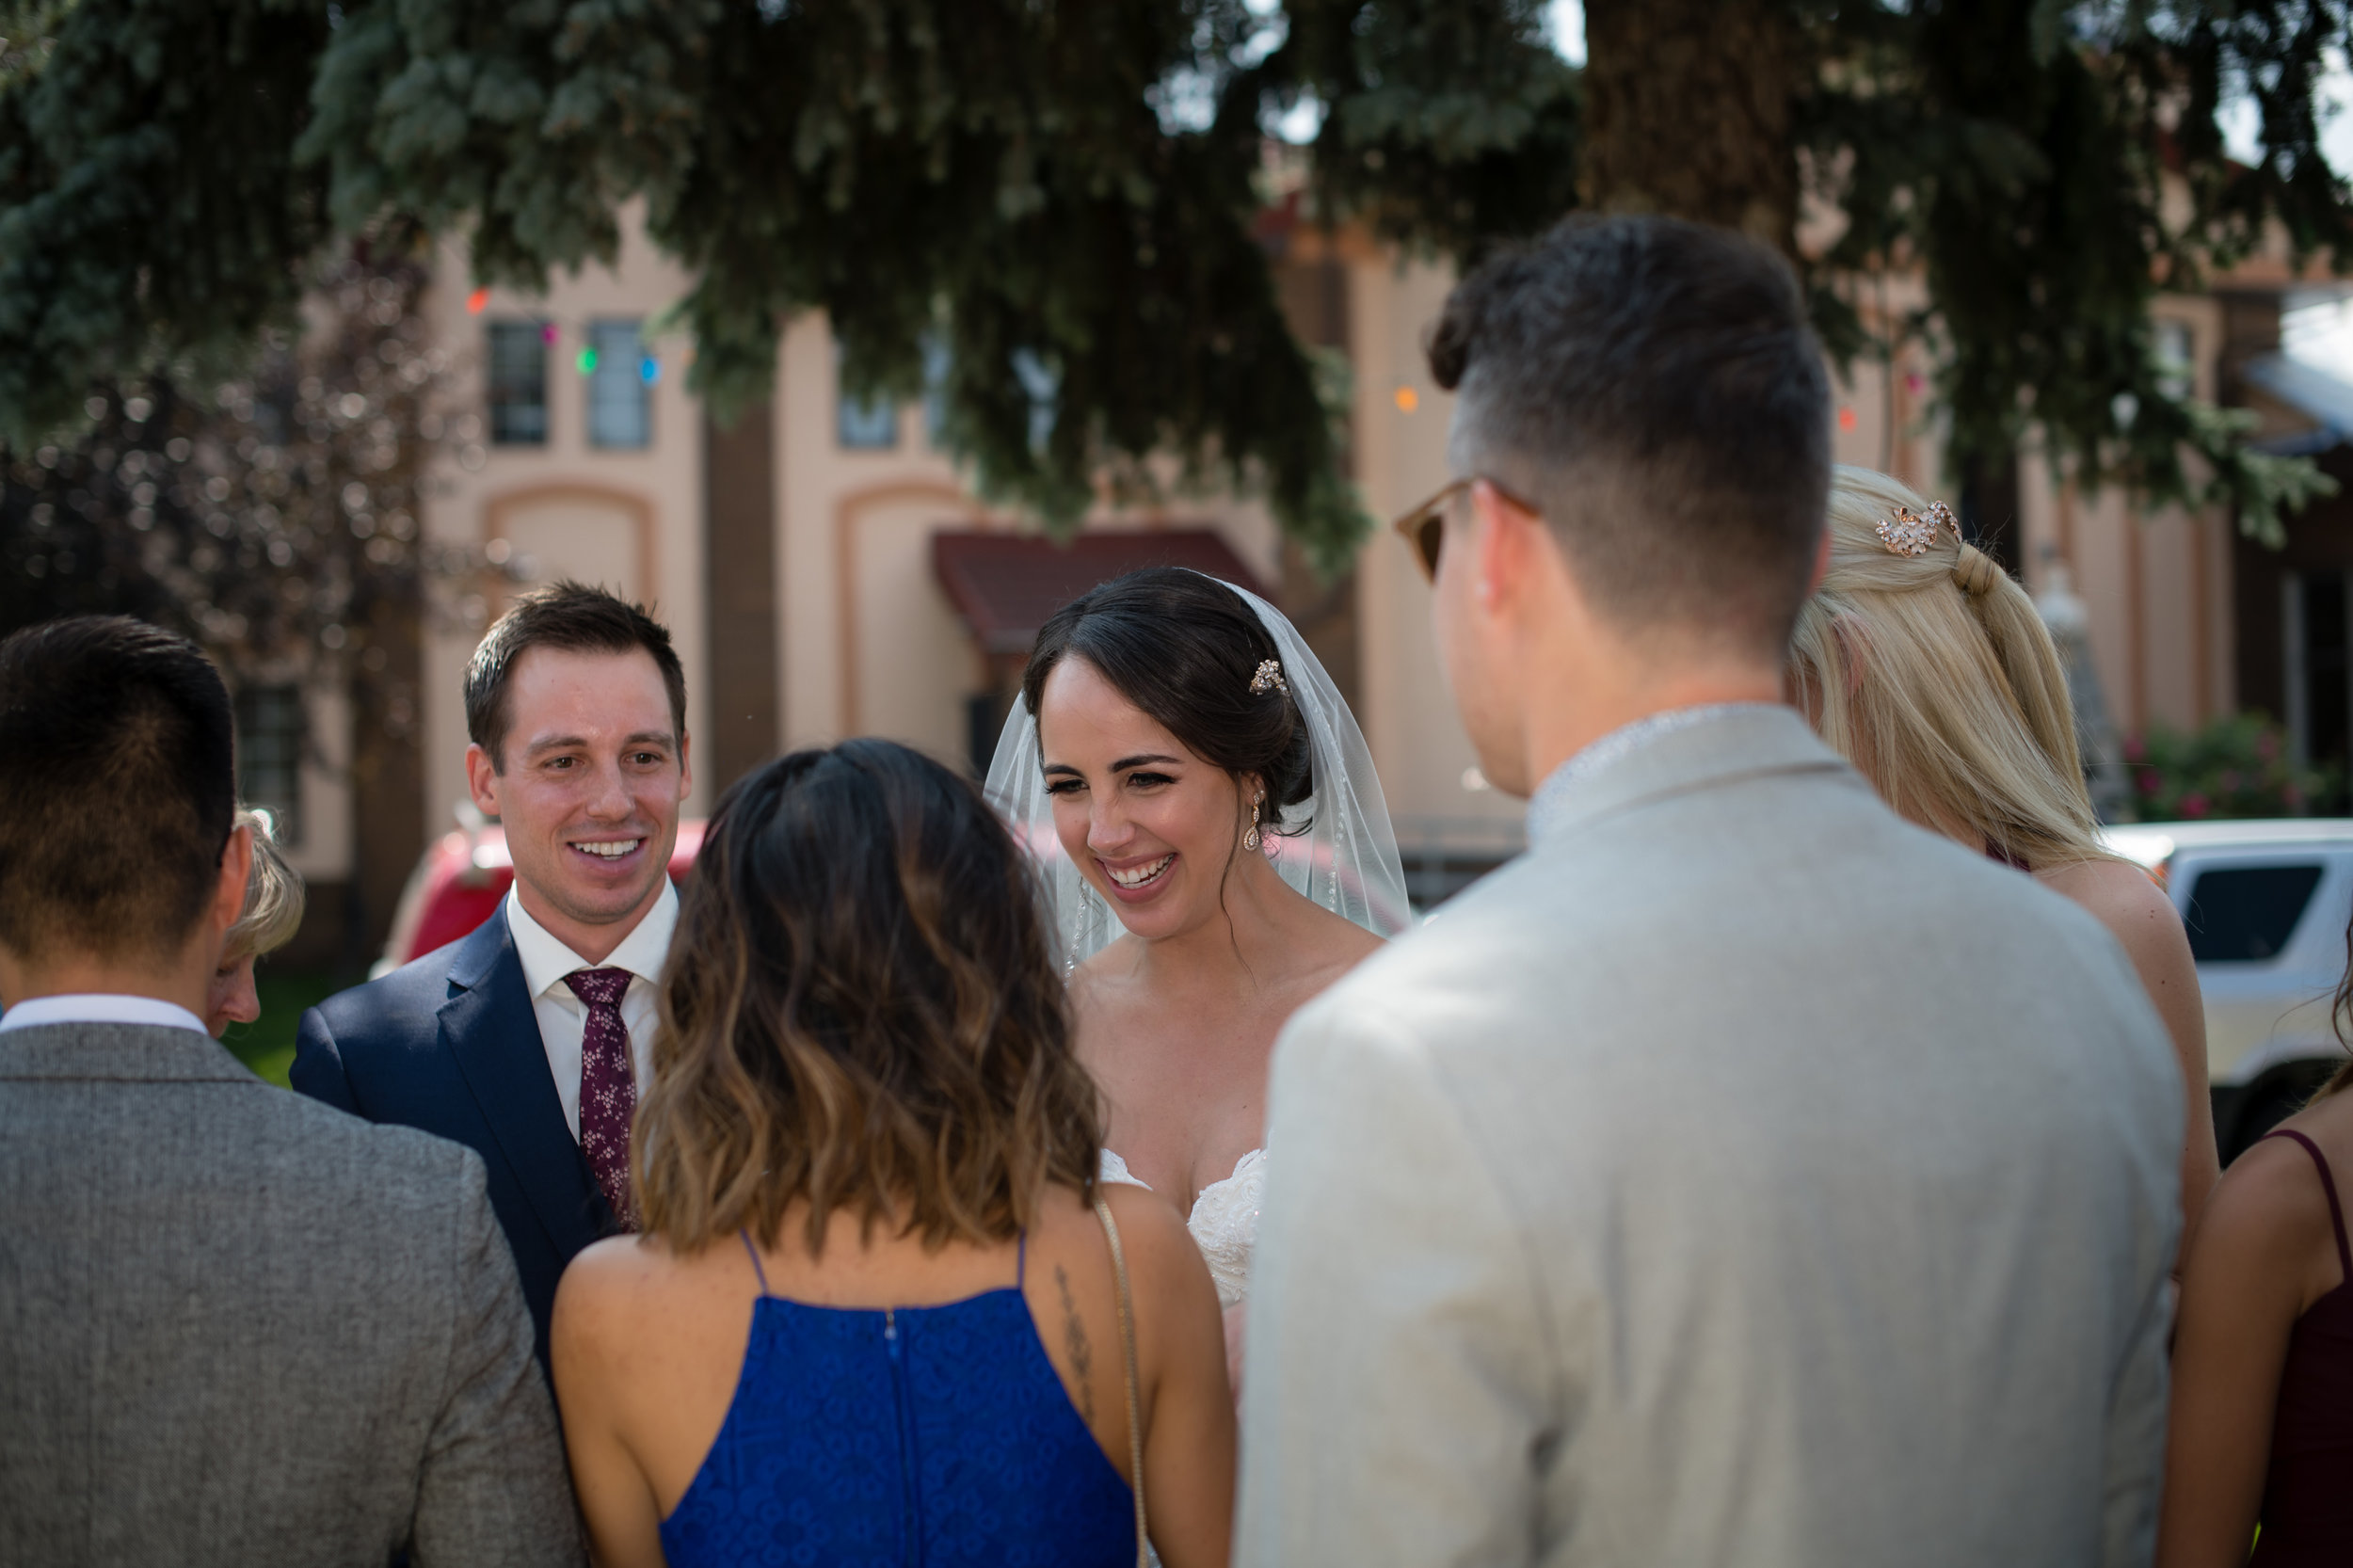 Laura_Danny_Wedding_Sneak_Peek_044.jpg